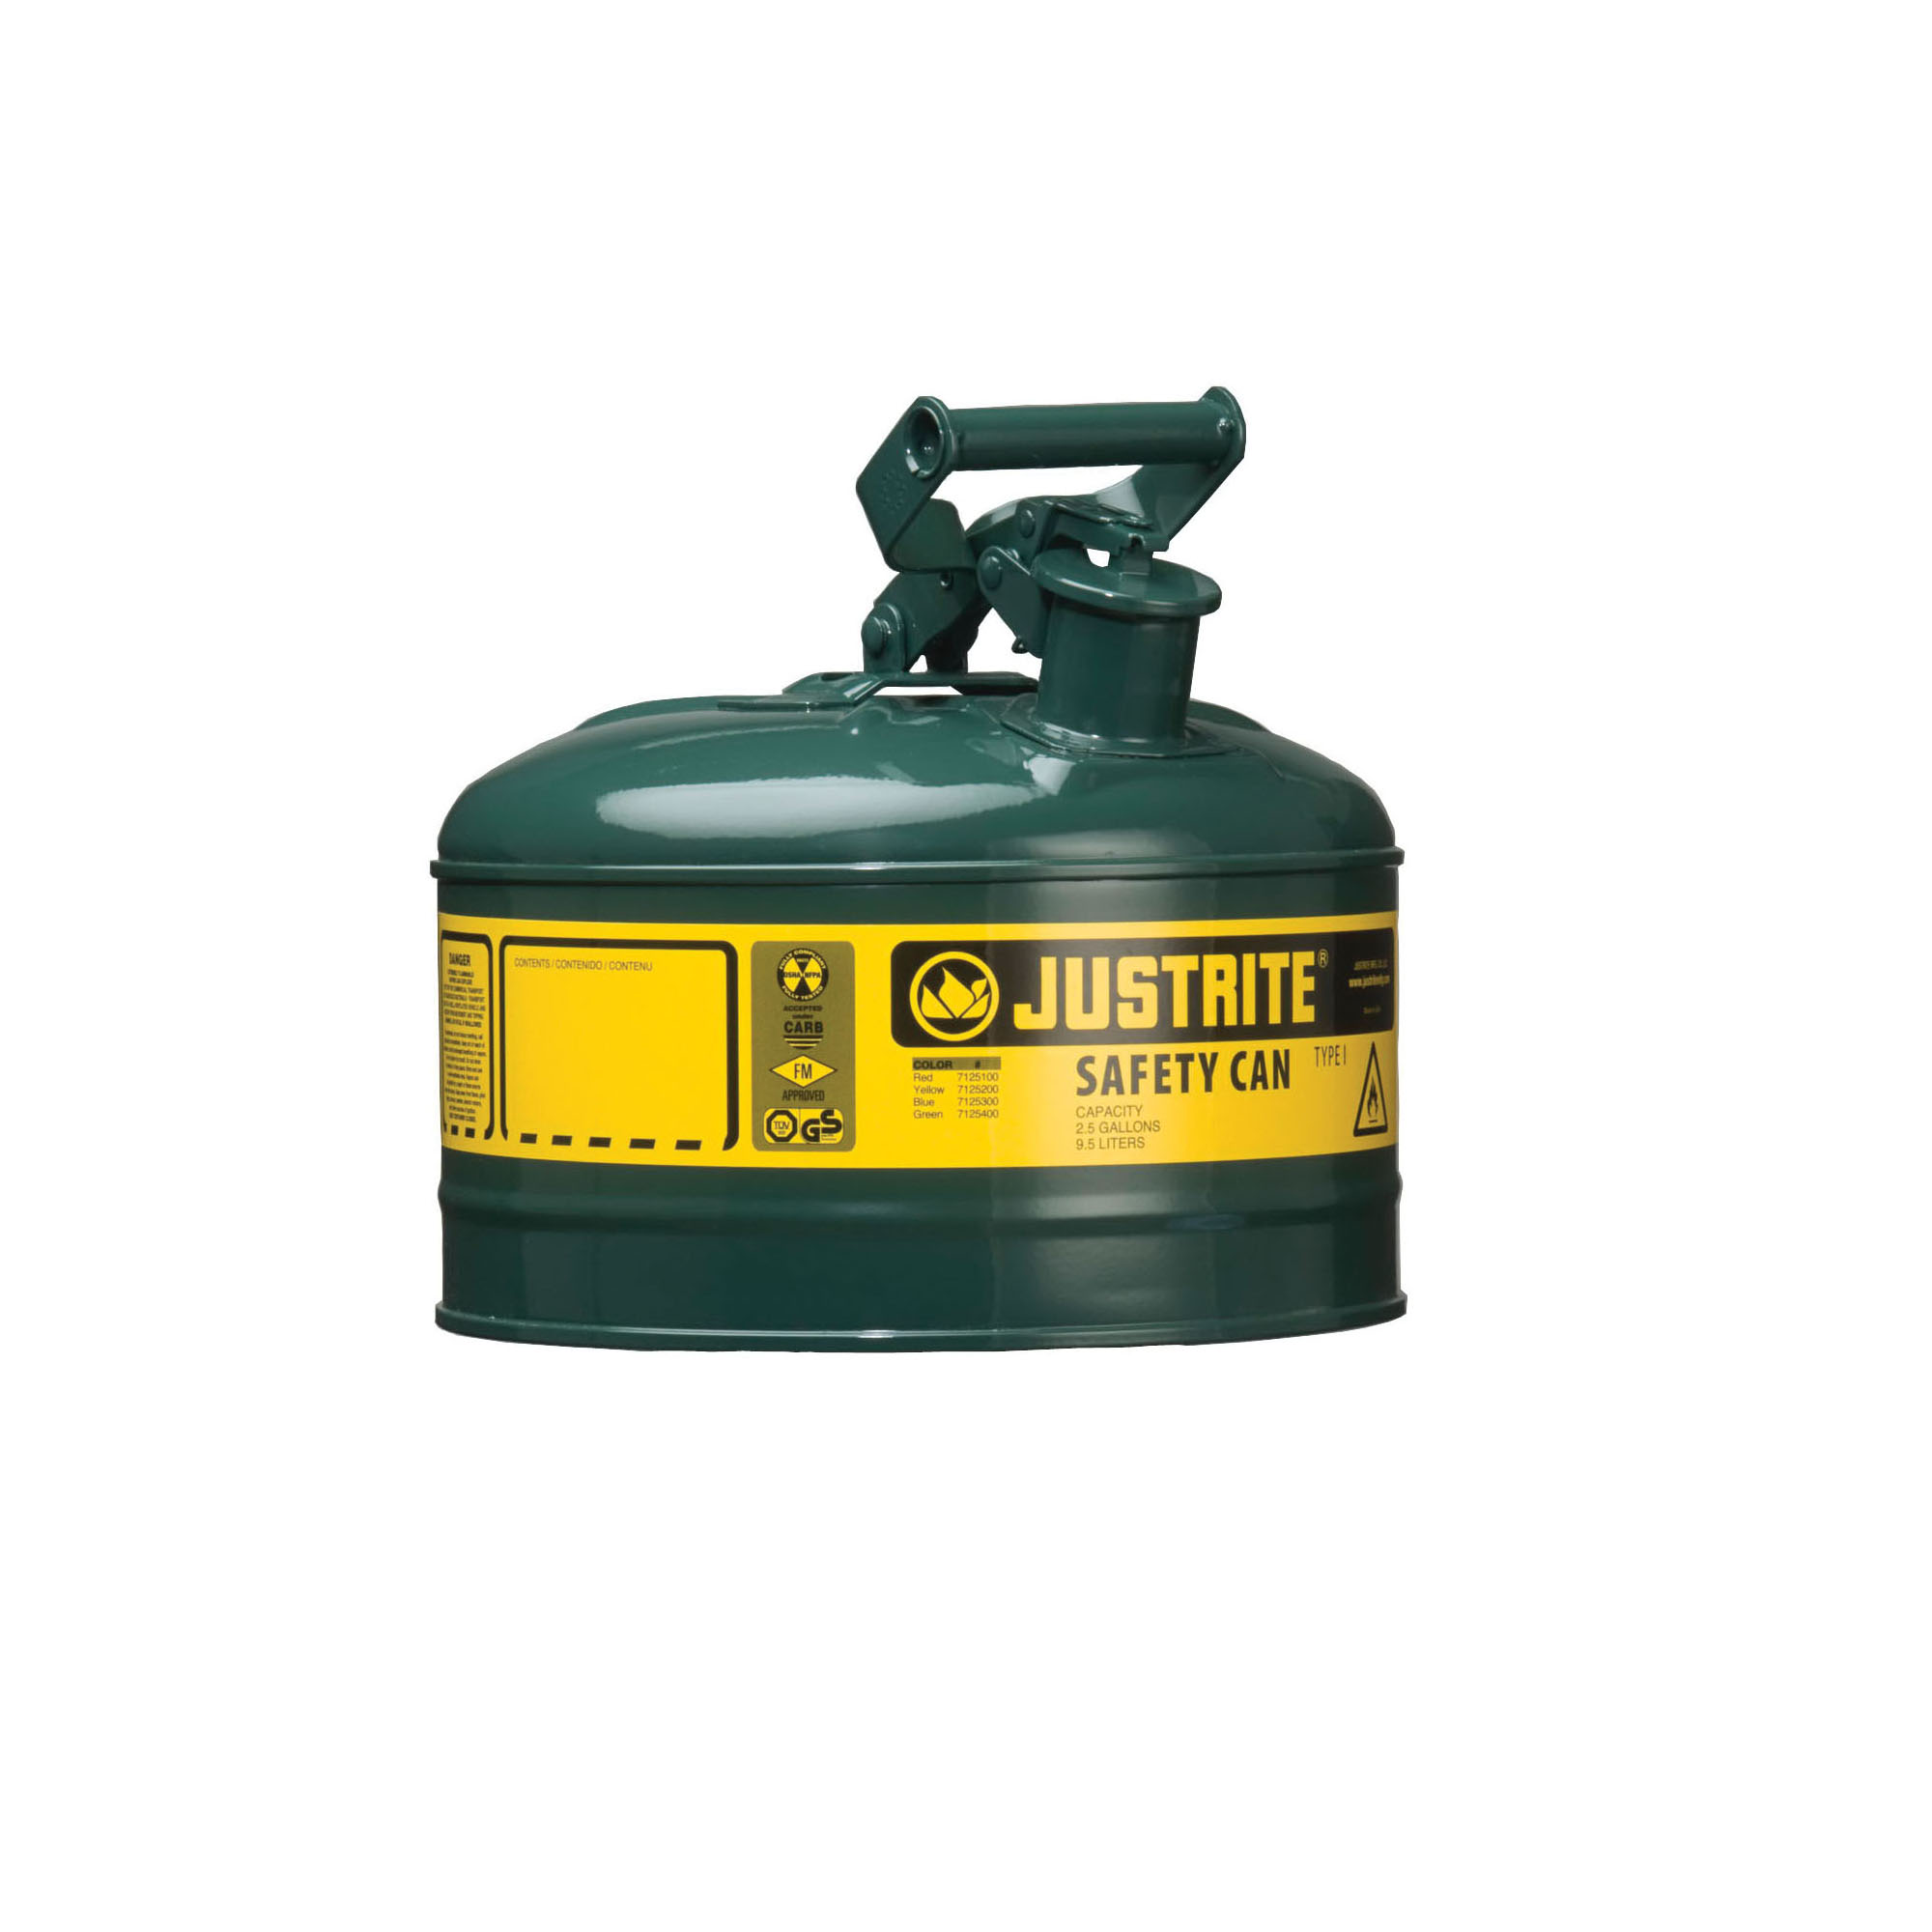 Justrite® 7110400 Type I Safety Can With Swinging Handle and Stainless Steel Flame Arrester, 1 gal Capacity, 9-1/2 in Dia x 11 in H, Steel, Green